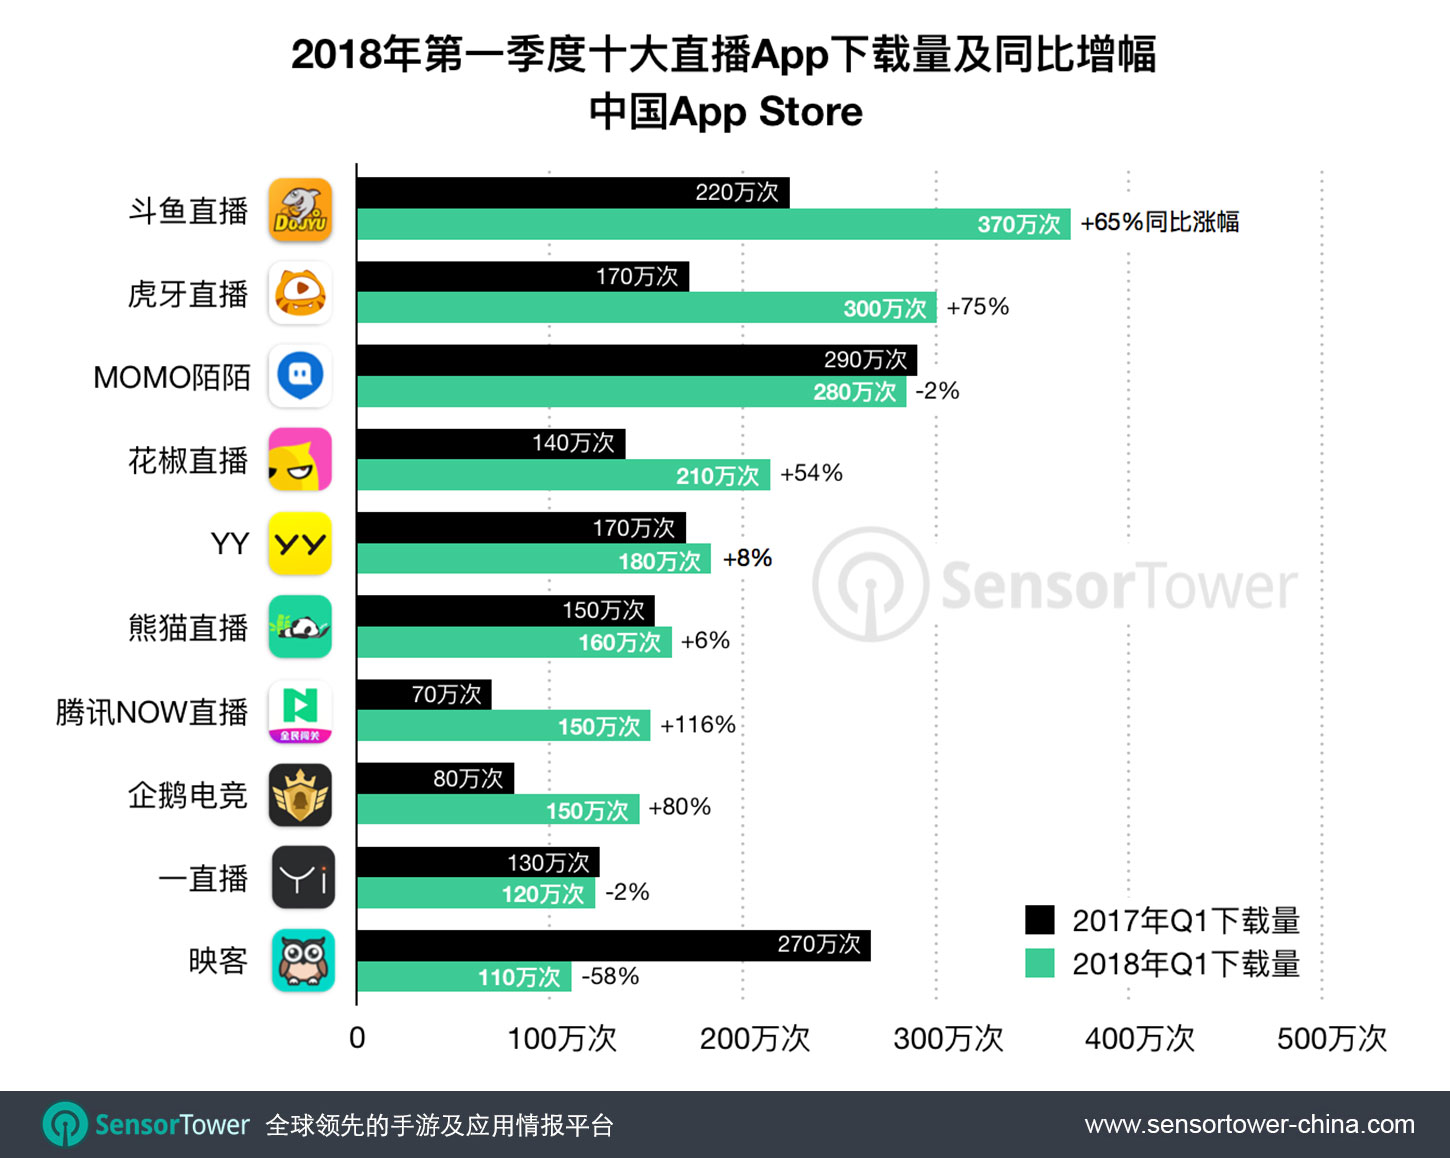 China's Top 10 Live Streaming Apps 1Q17 vs. 1Q18